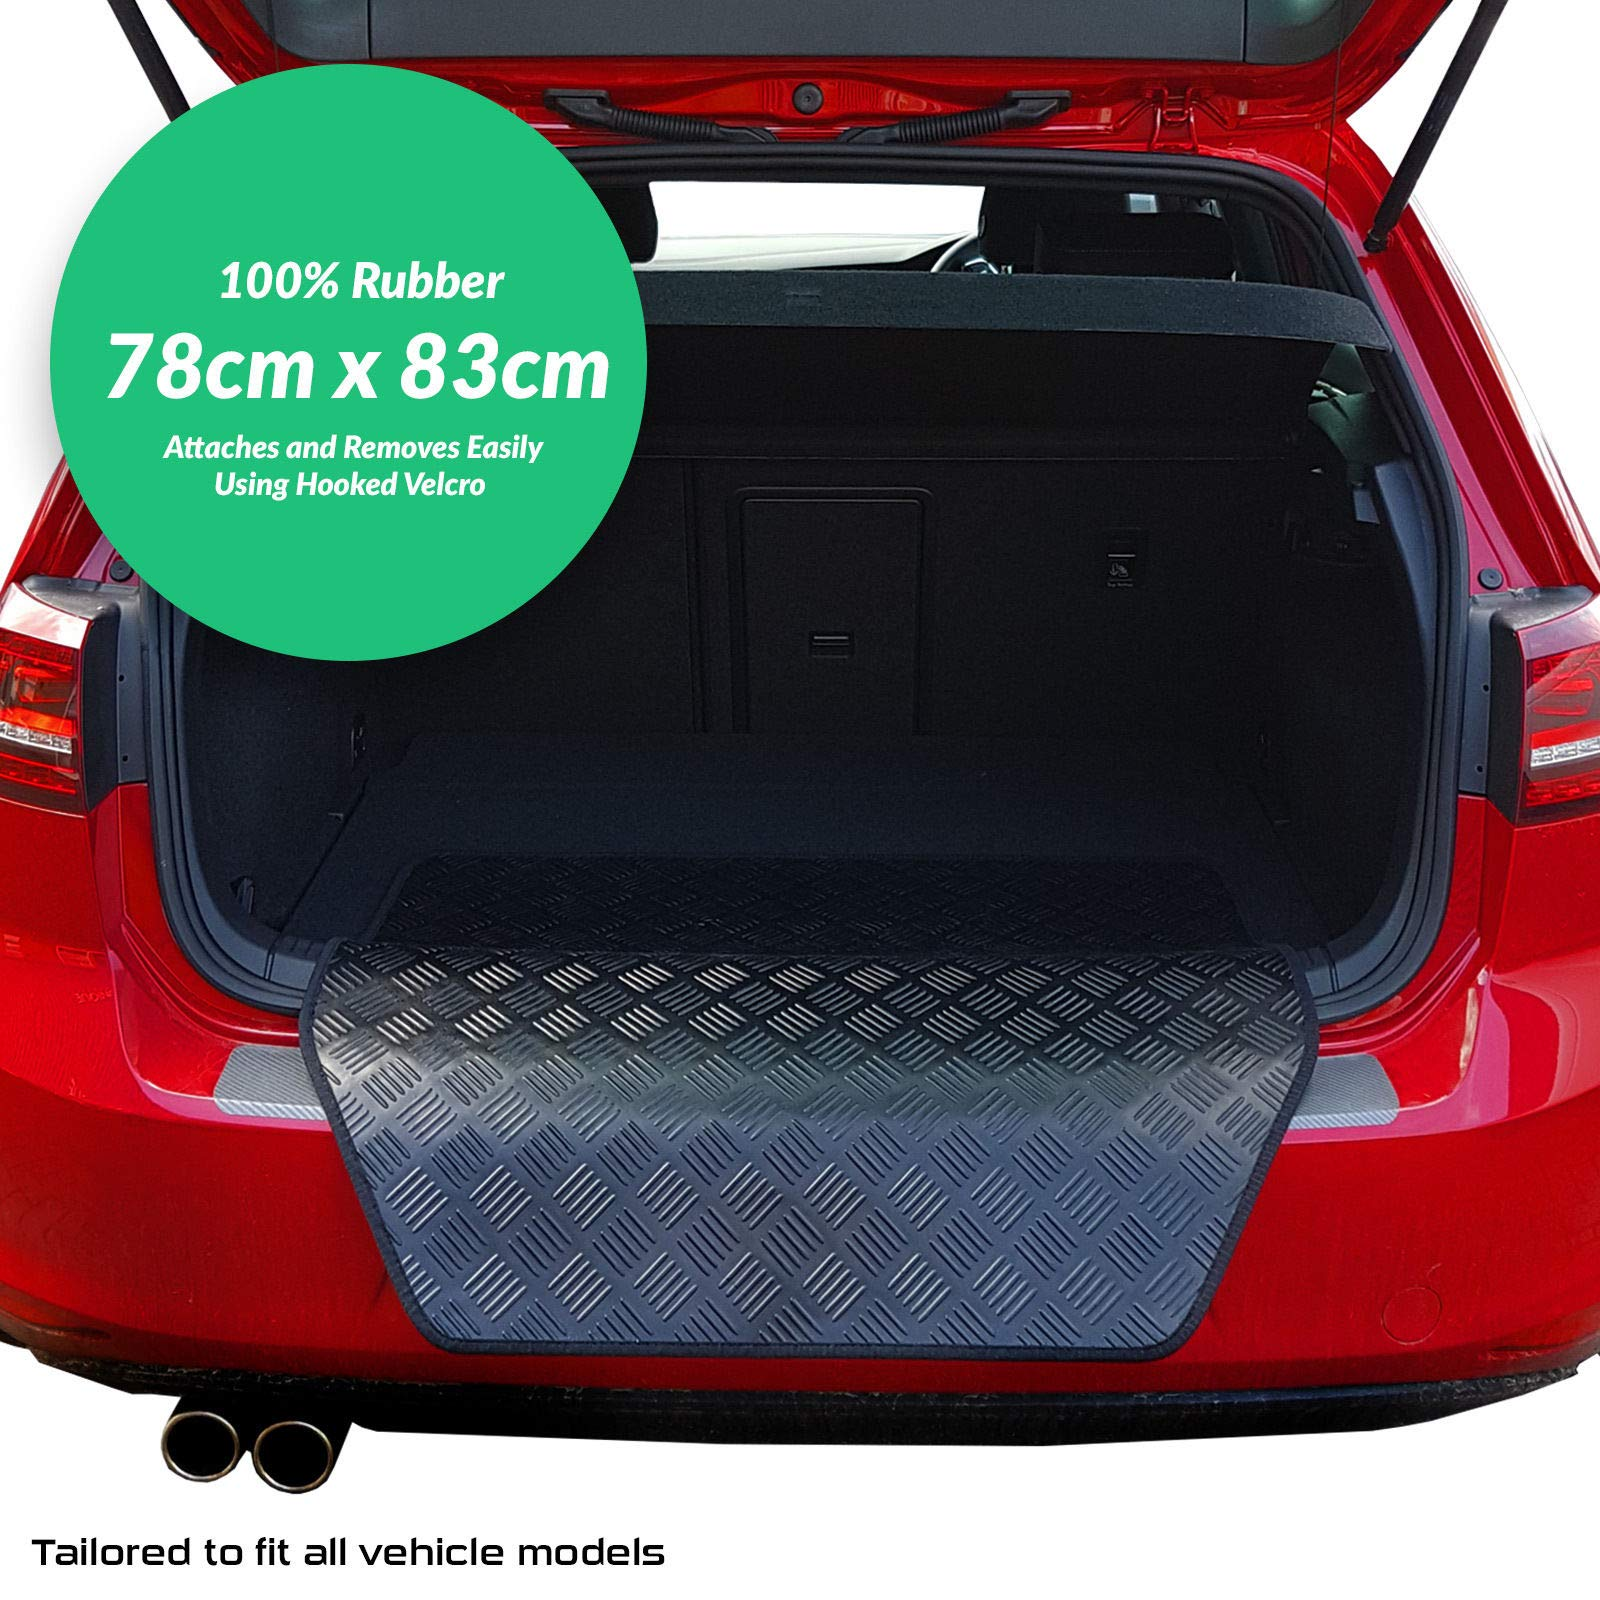 carmats4u To fit 3 Series Touring 2012+ Fully Tailored PVC Boot Liner//Mat//Tray Black Carpet Insert F31